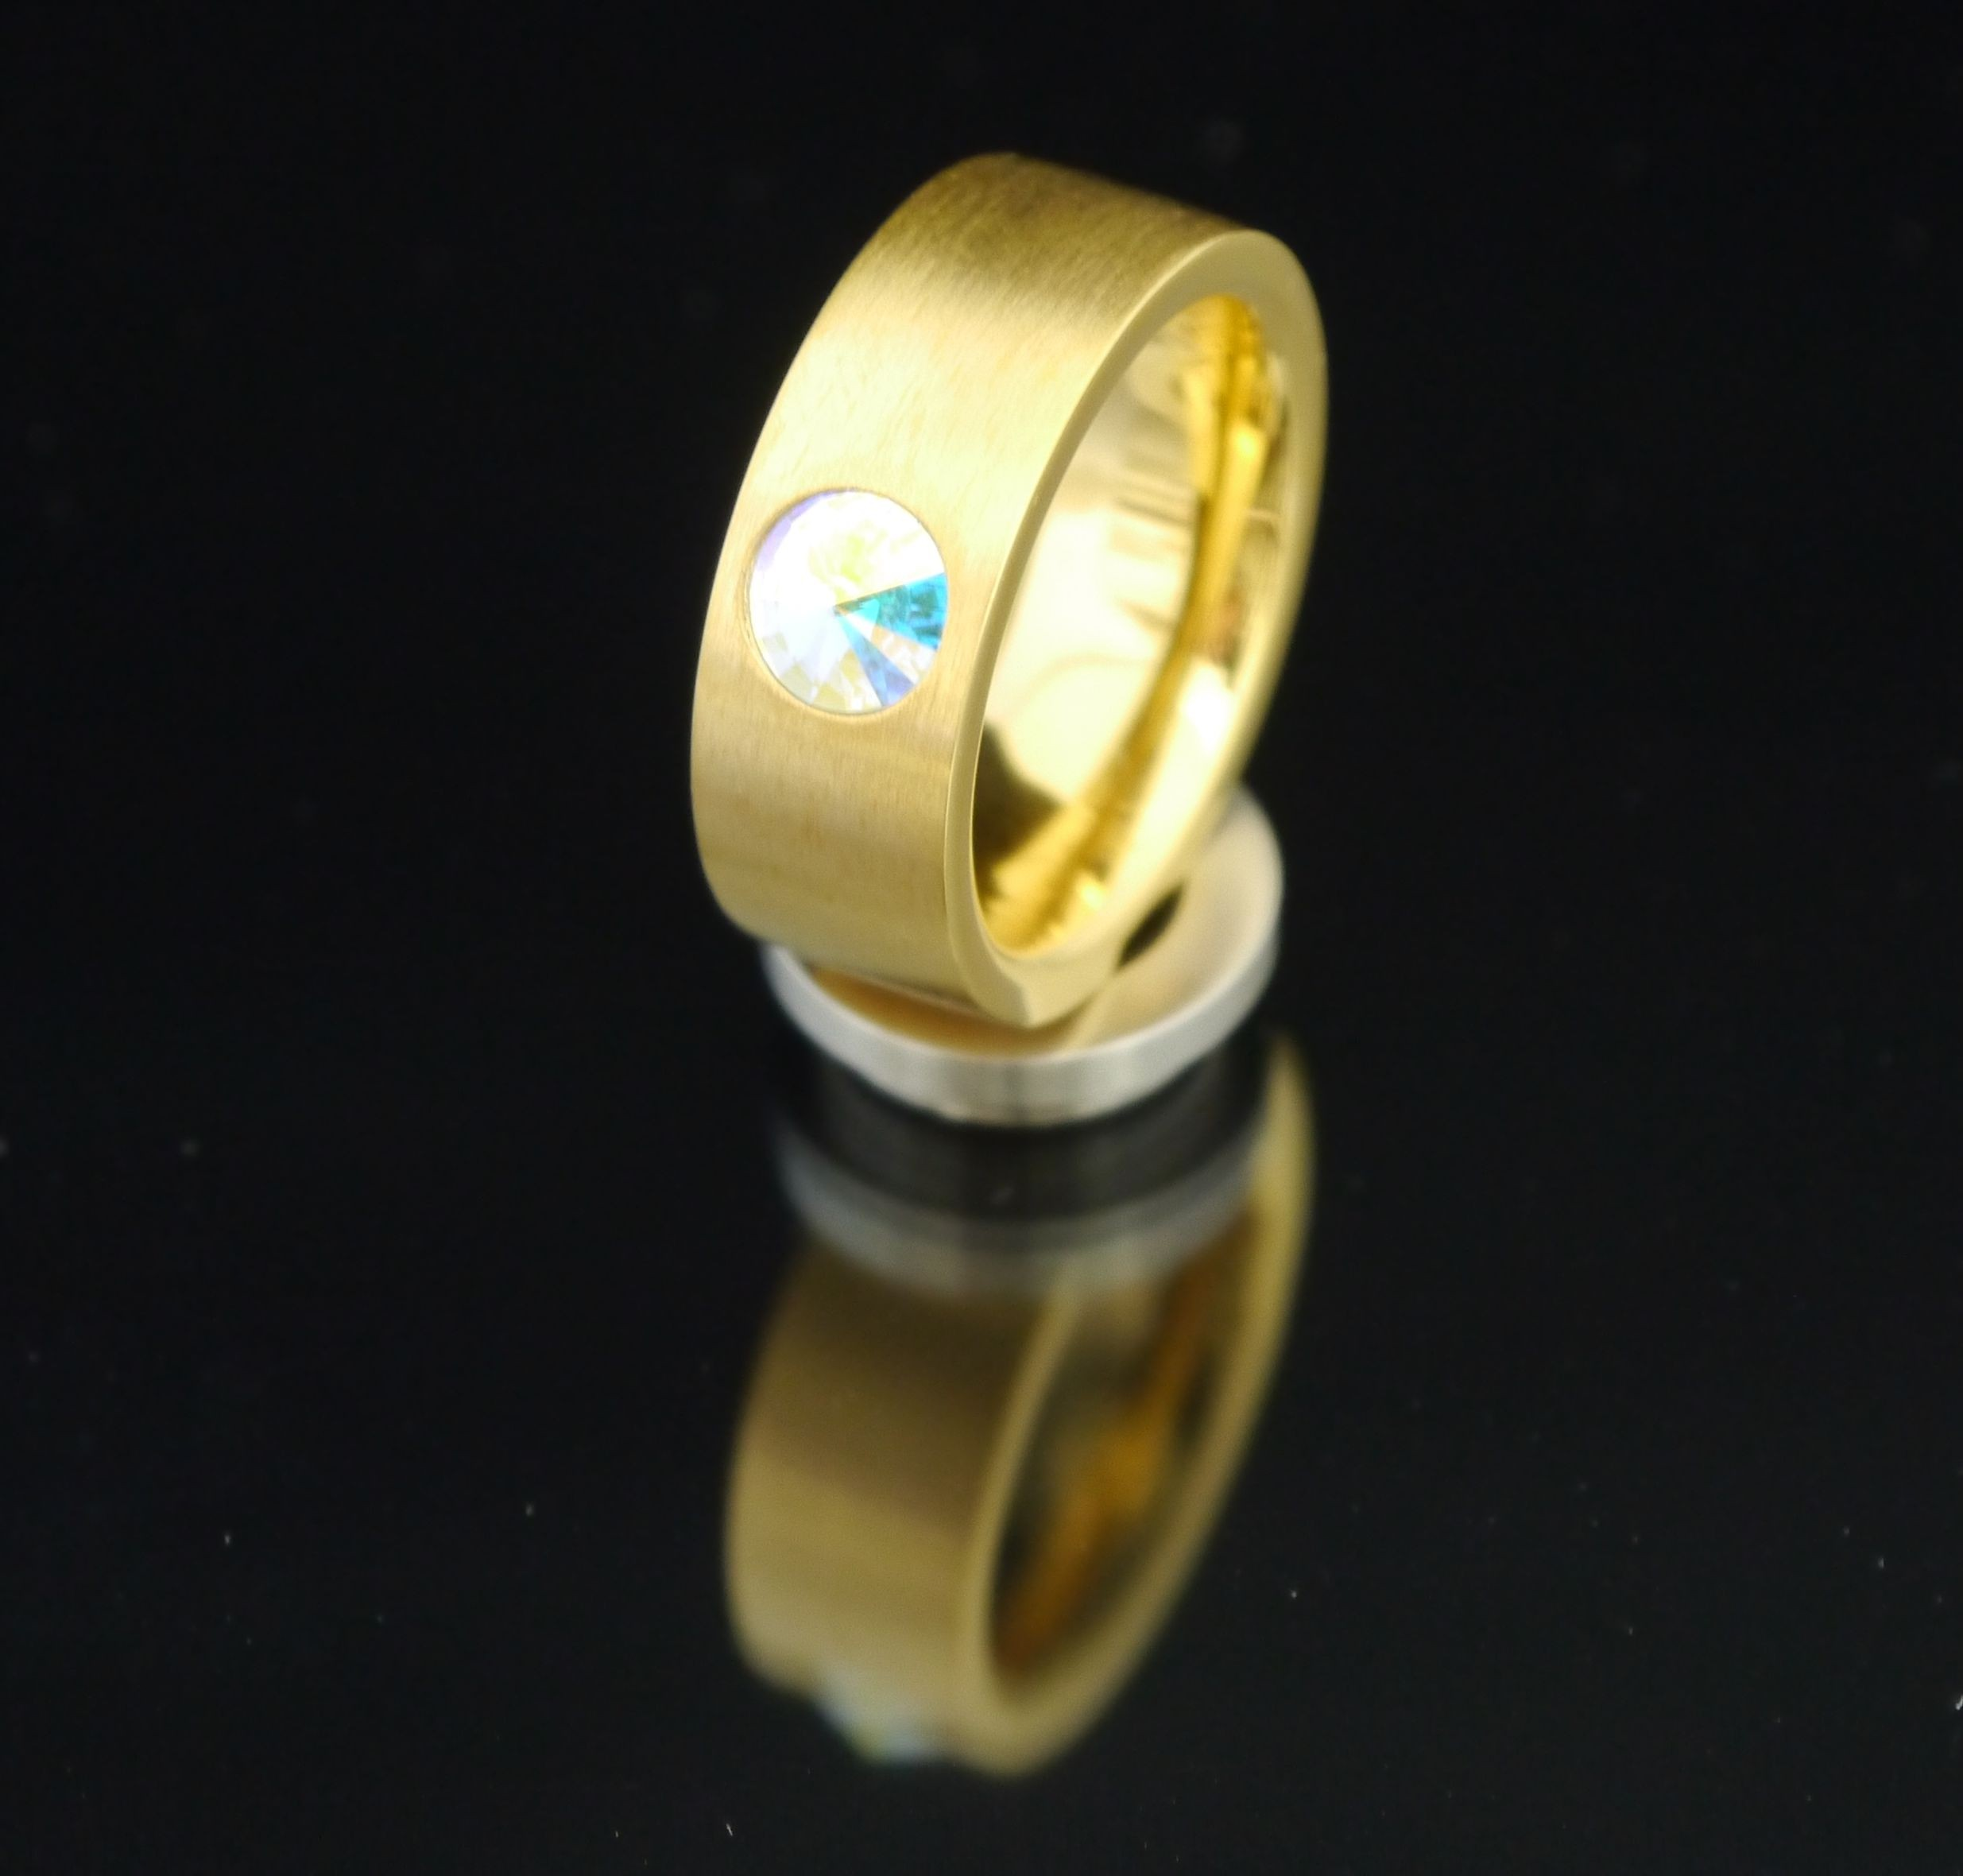 8mm PVD Gold Edelstahlring mit Swarovski Elements Fb. Crystal Aurore Boreale